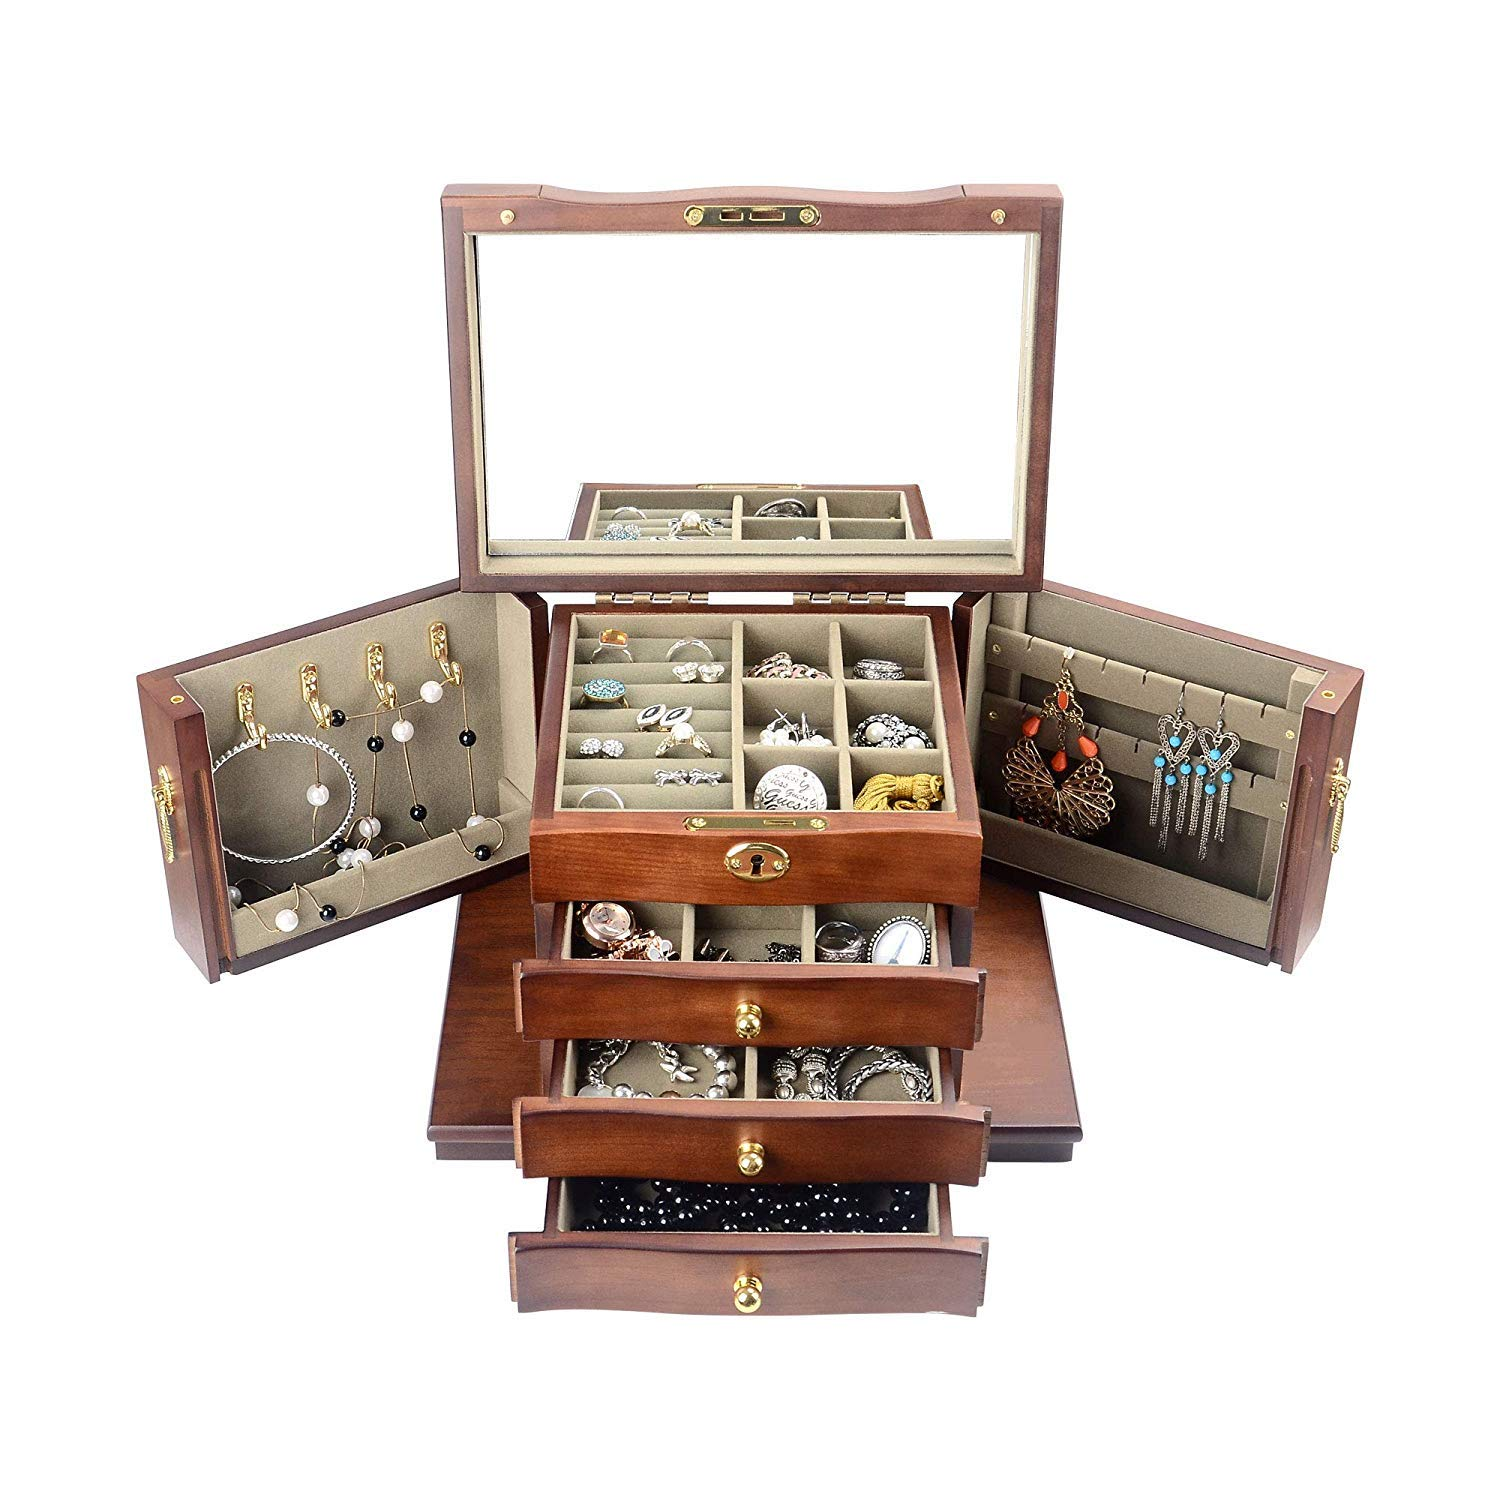 Kendal Hardwood Large Wooden Jewelry Box Organizer with Mirror and Lock WJC03HT by Kendal